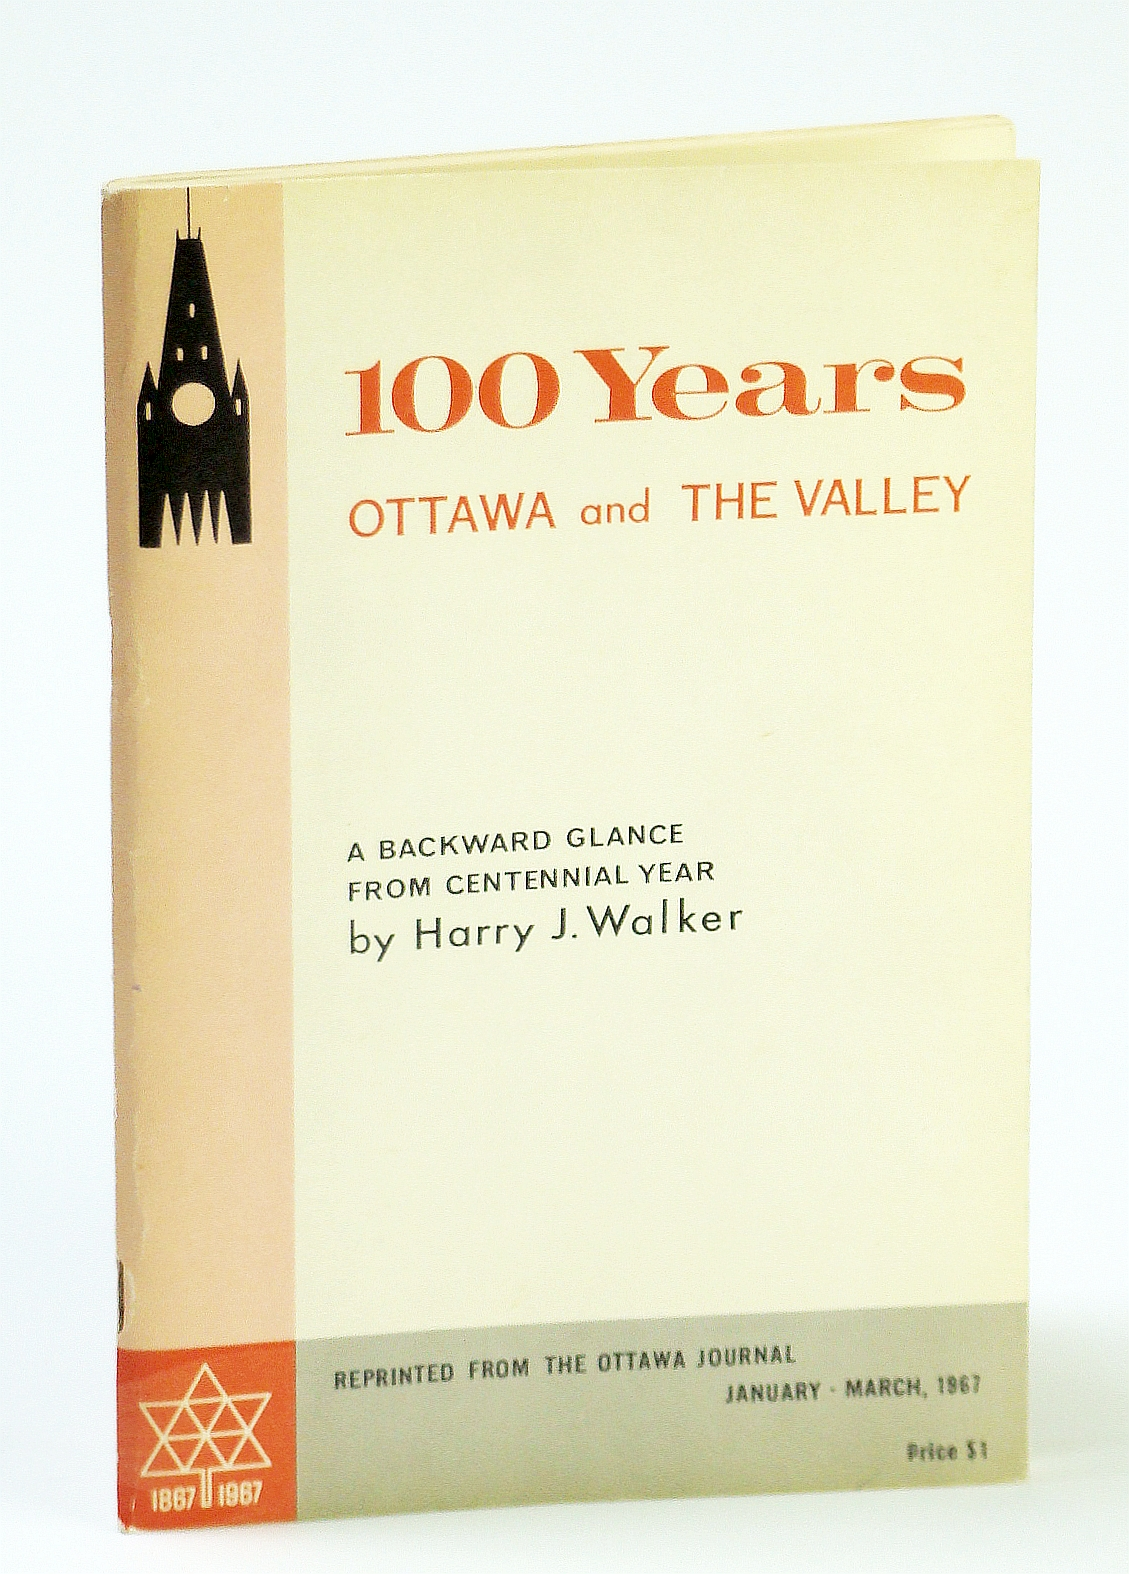 Image for 100 YEARS: Ottawa and the Valley, a Backward Glance from Centennial Year Reprinted from the Ottawa Journal, Jan-Mar 1967